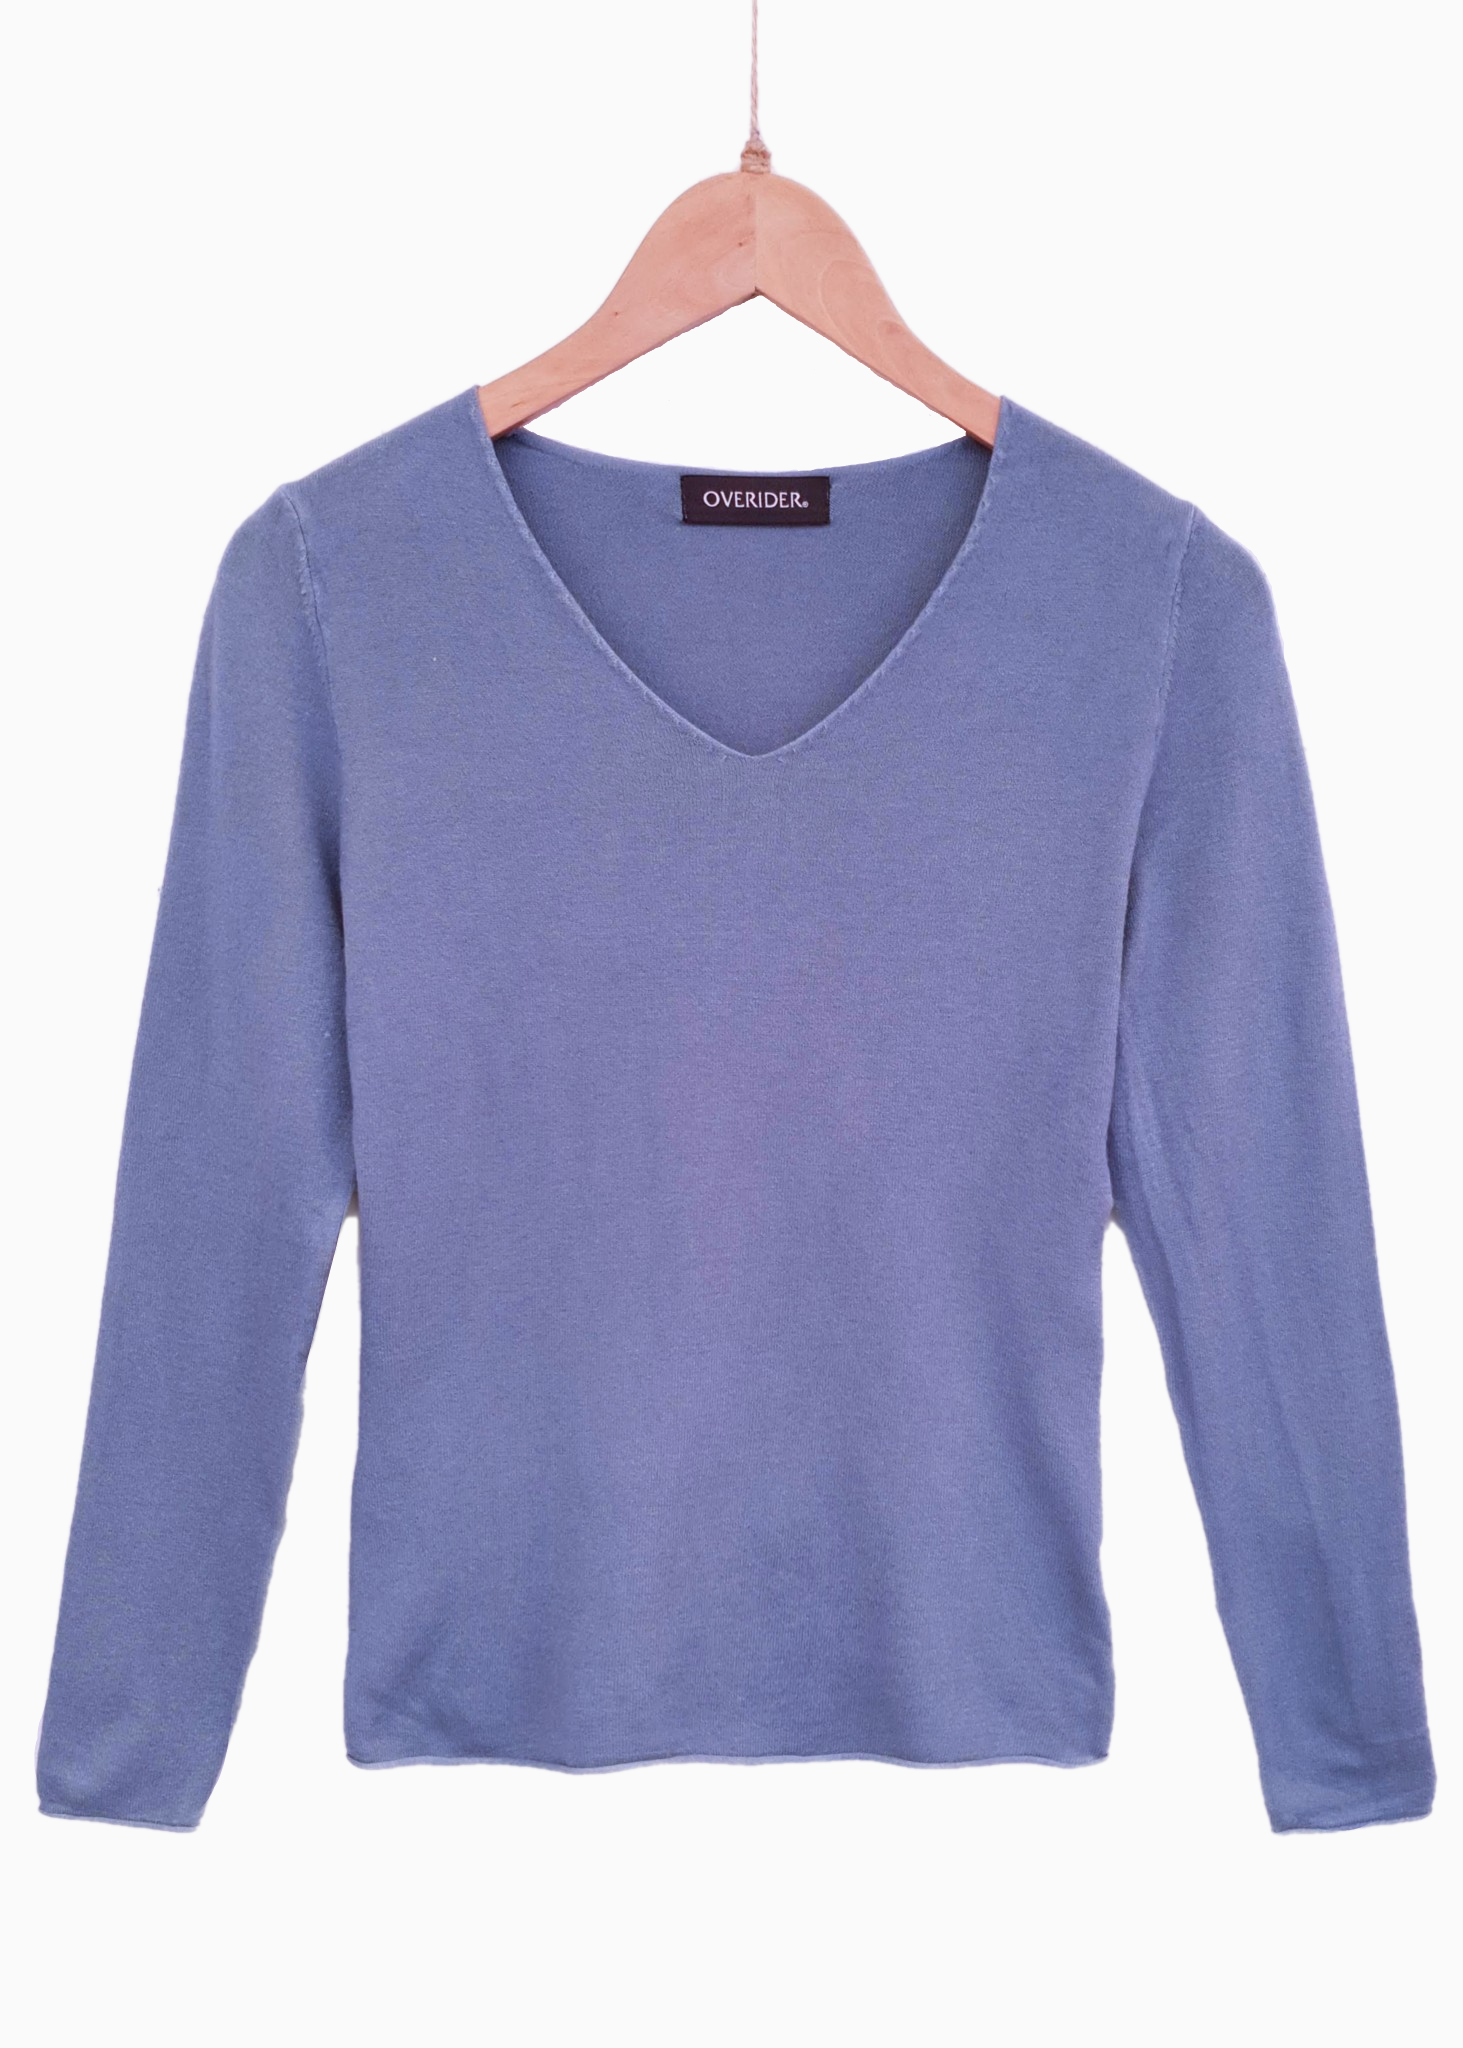 MILA - V Neck Jumper - Teal